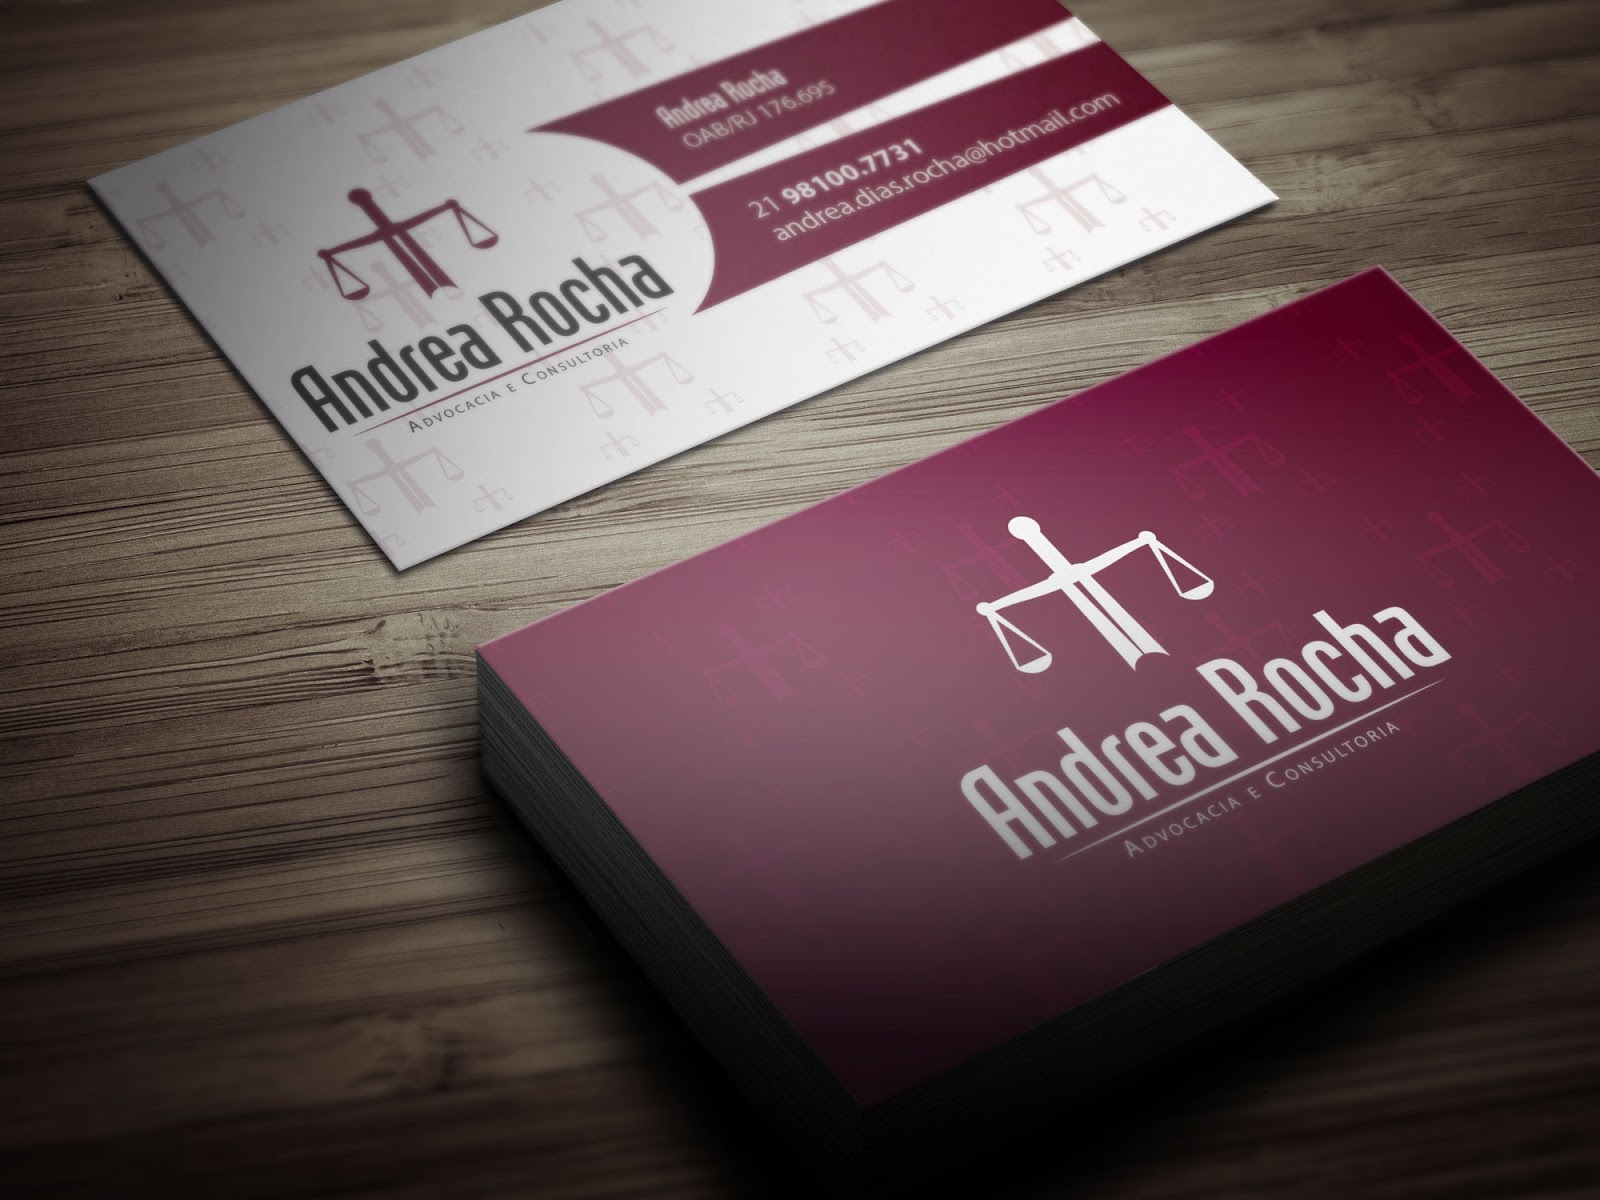 Attorney business cards business card tips attorney business cards colourmoves